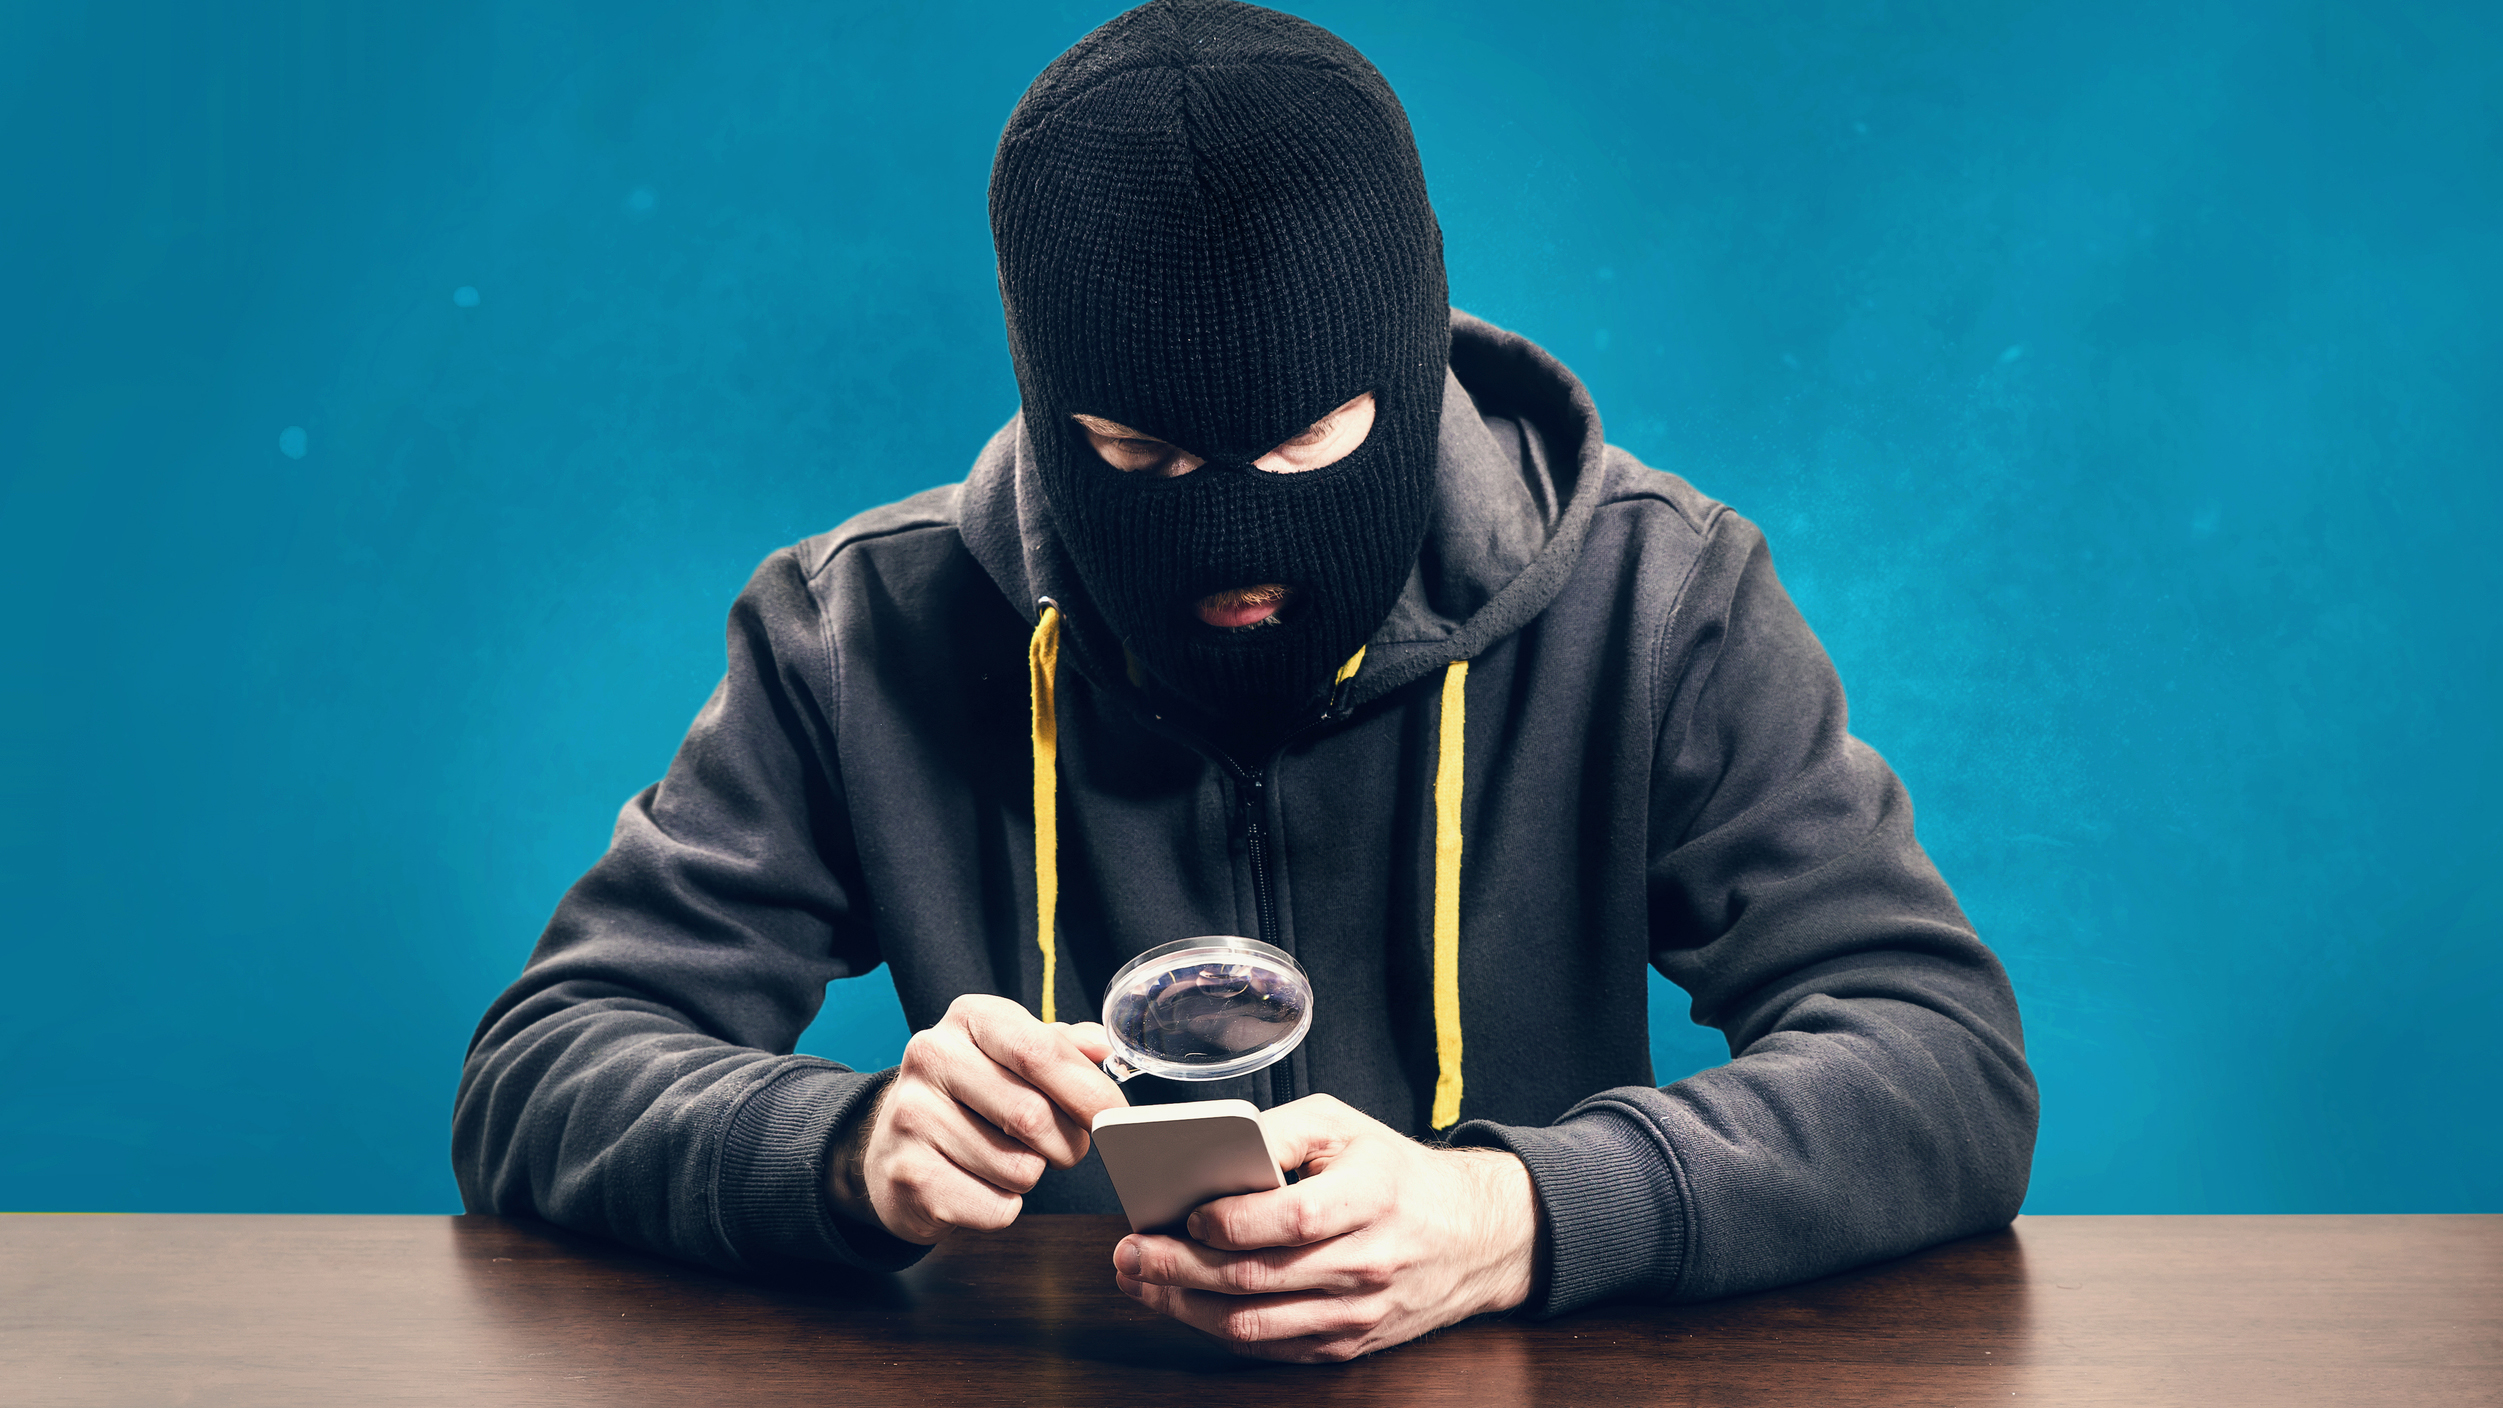 Hacker-inspecting-smartphone-with-magnifying-glass-iStock